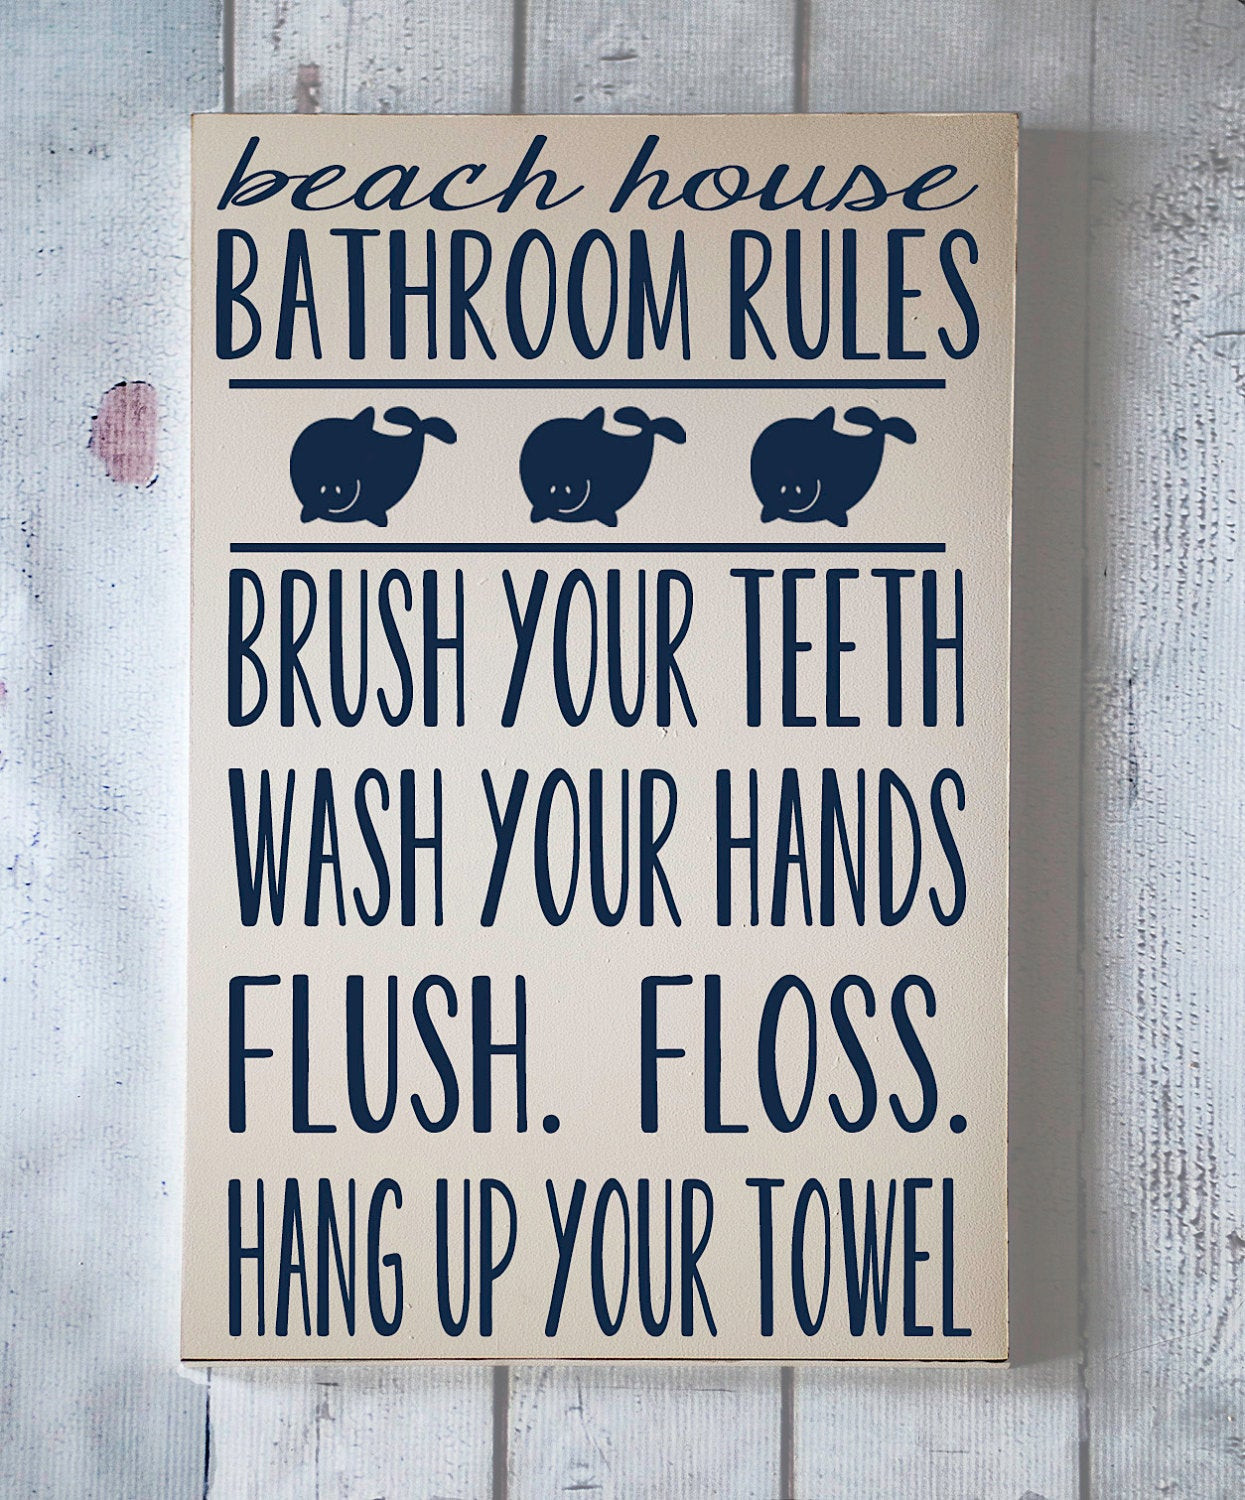 Bathroom Rules For Kids  Children Wall Art Beach Theme Bathroom Rules by vinylcrafts